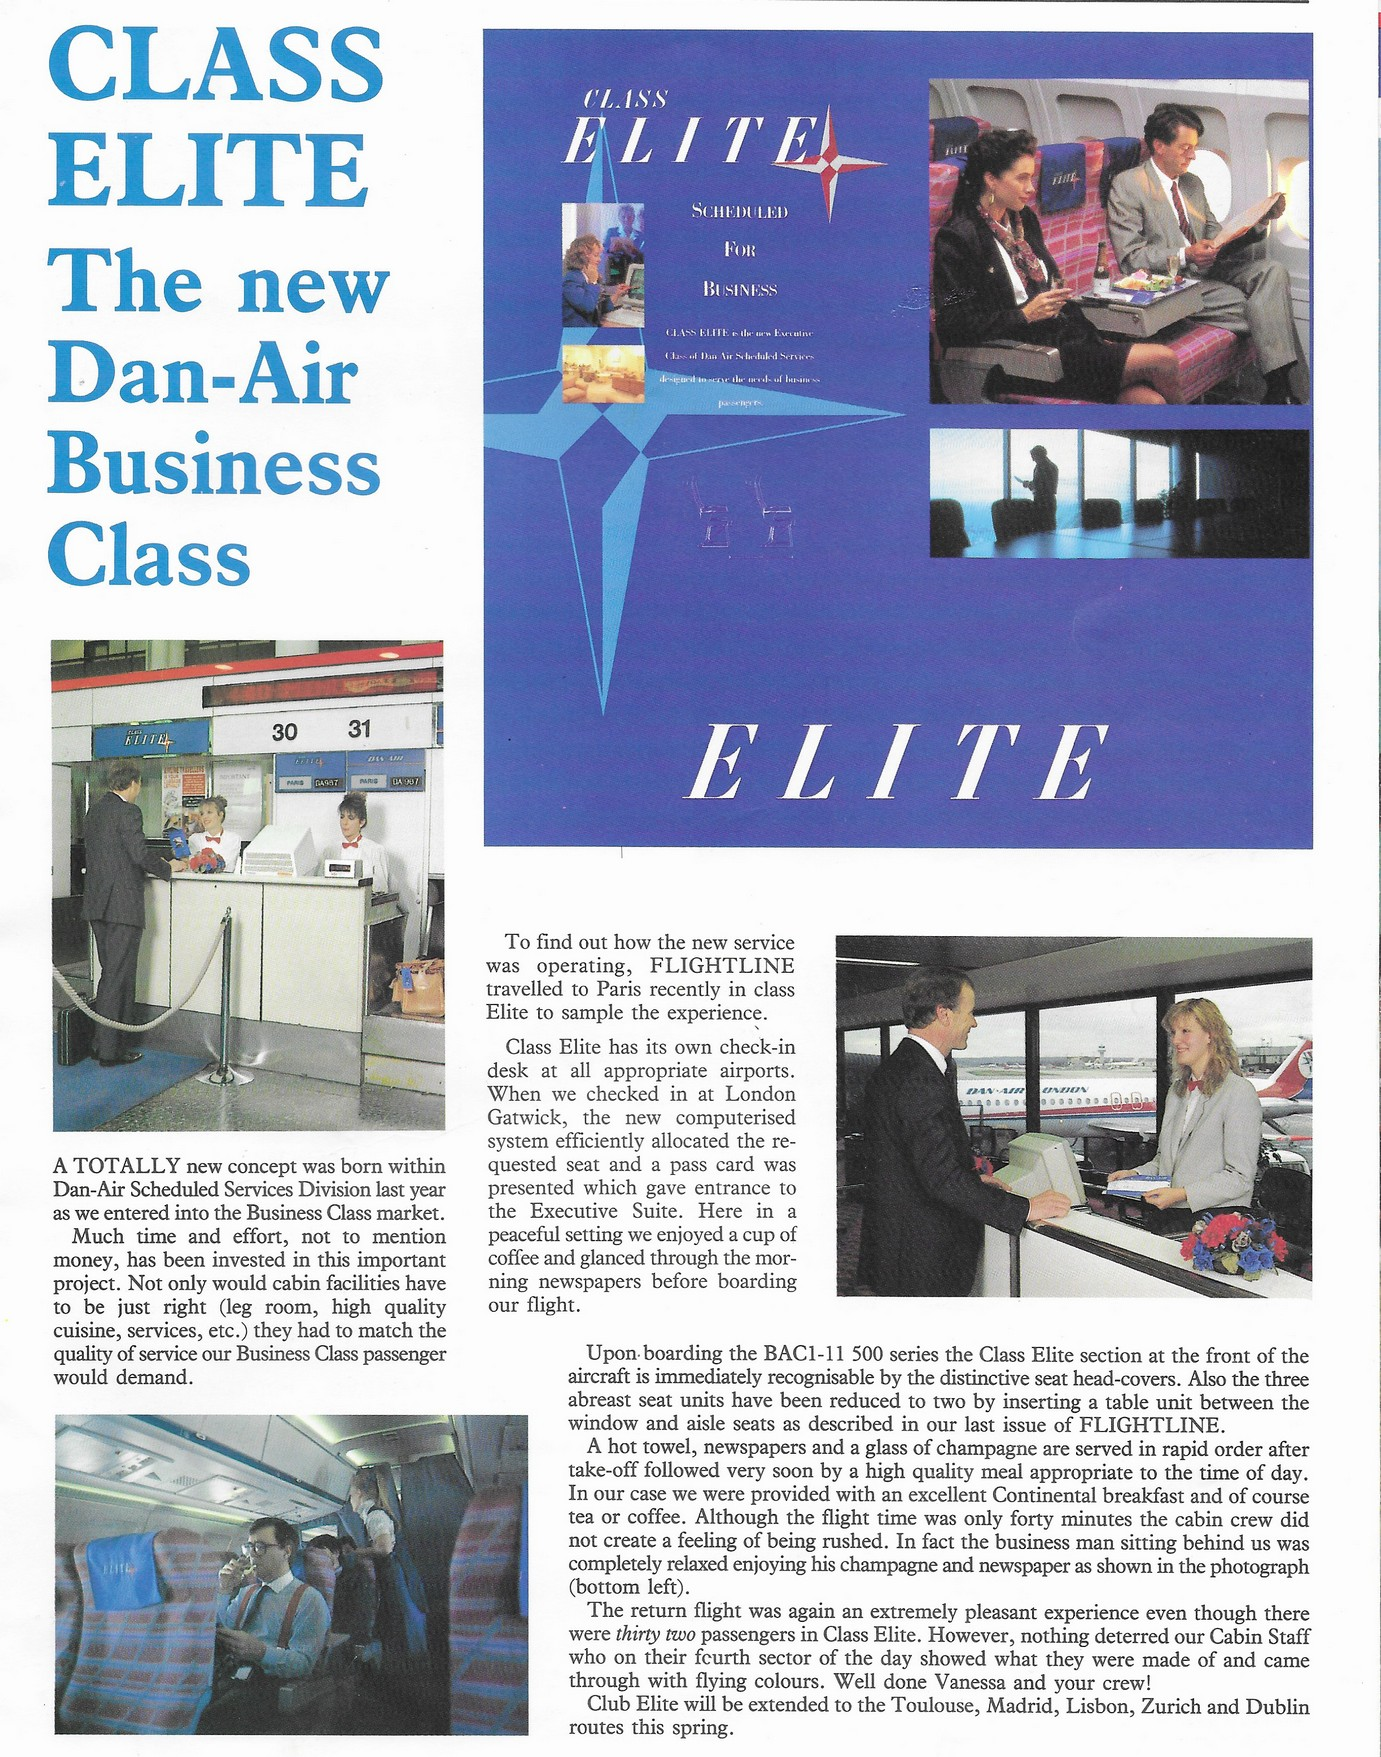 ea2e083f76 Welcome to our Class Elite page. Here we will take you through the flight  experience on what was acknowledged as one of the best business class  cabins in ...